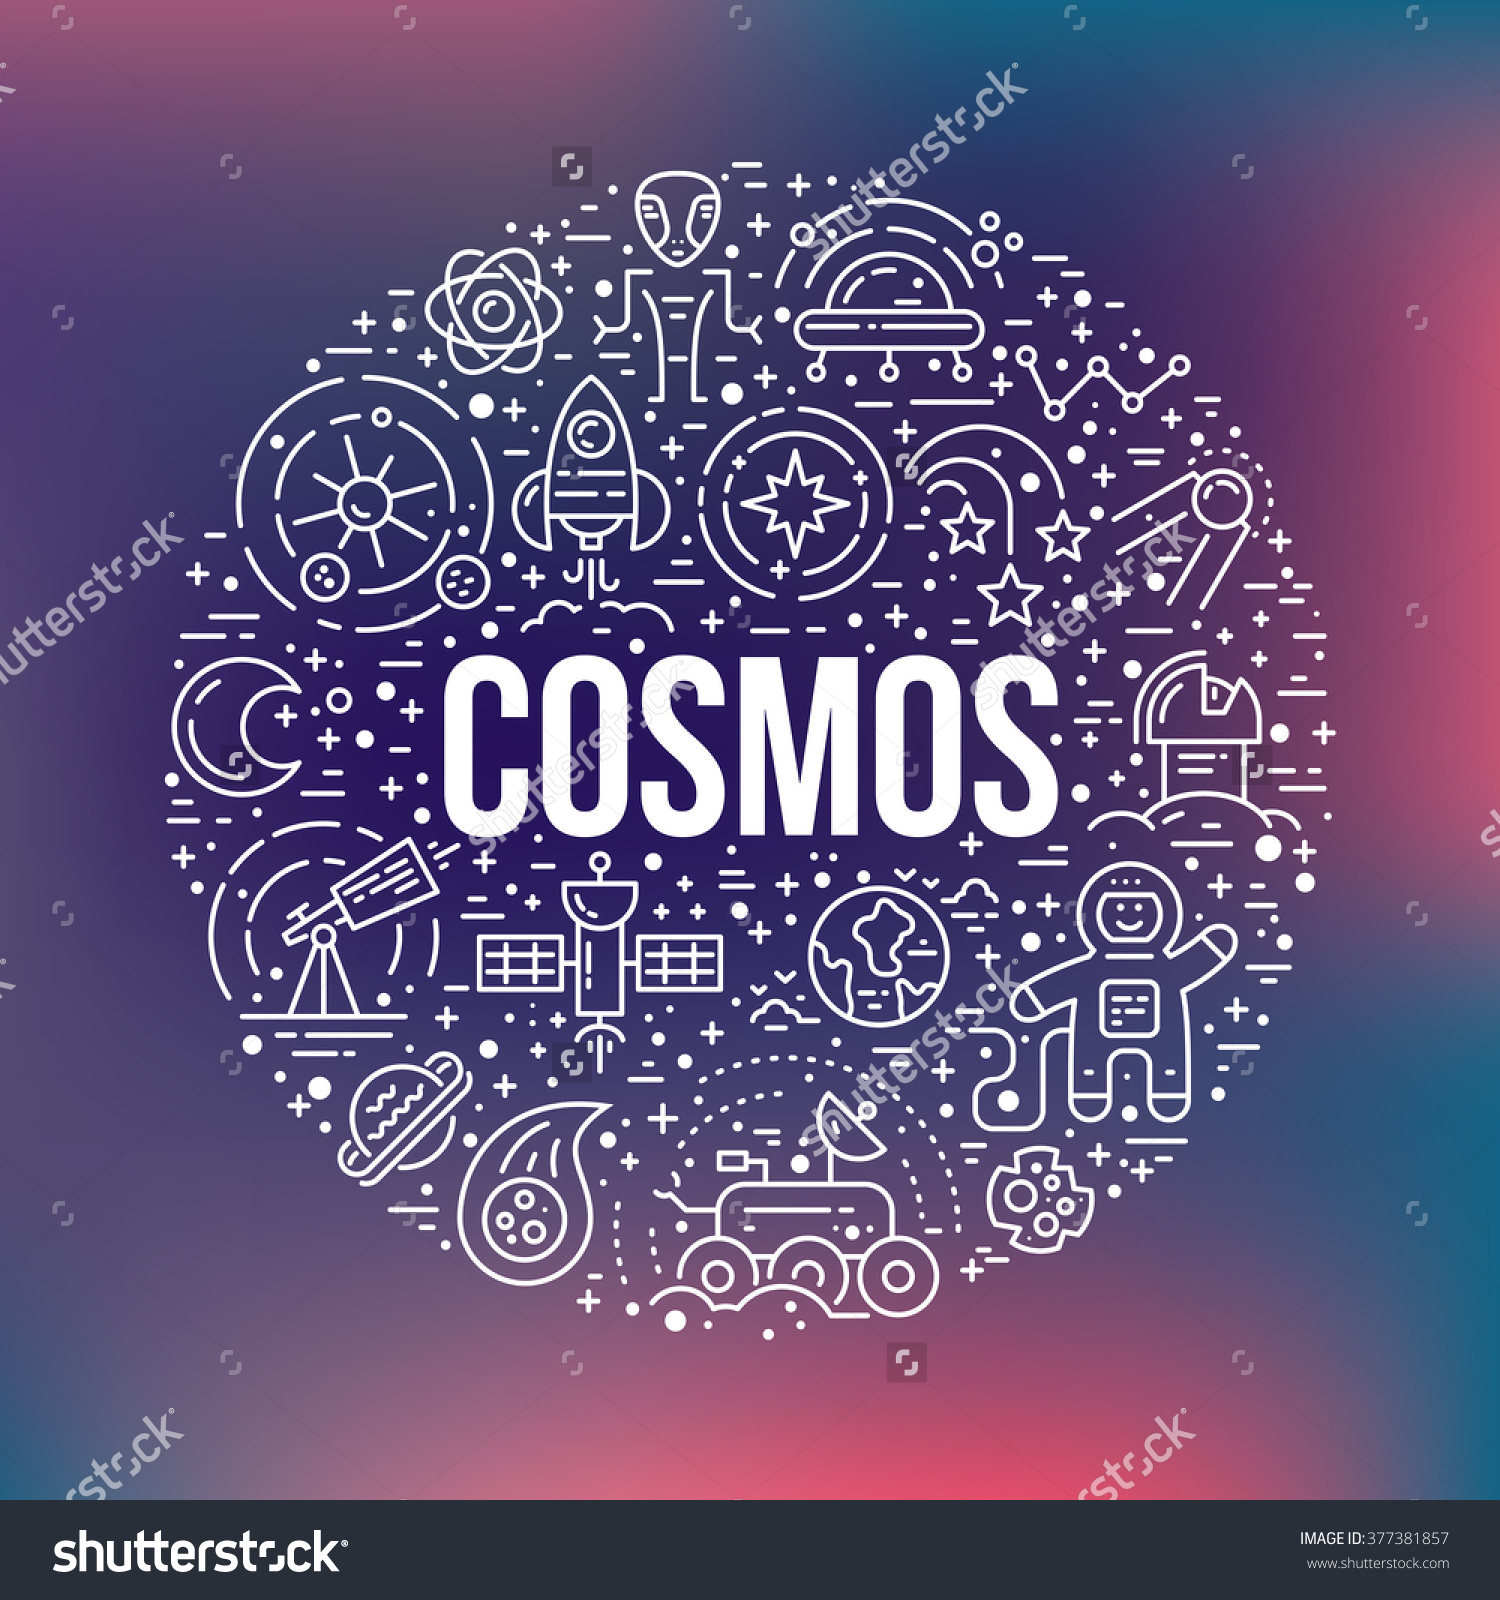 Cosmos Clipart Element Different Space Universe Stock Vector.